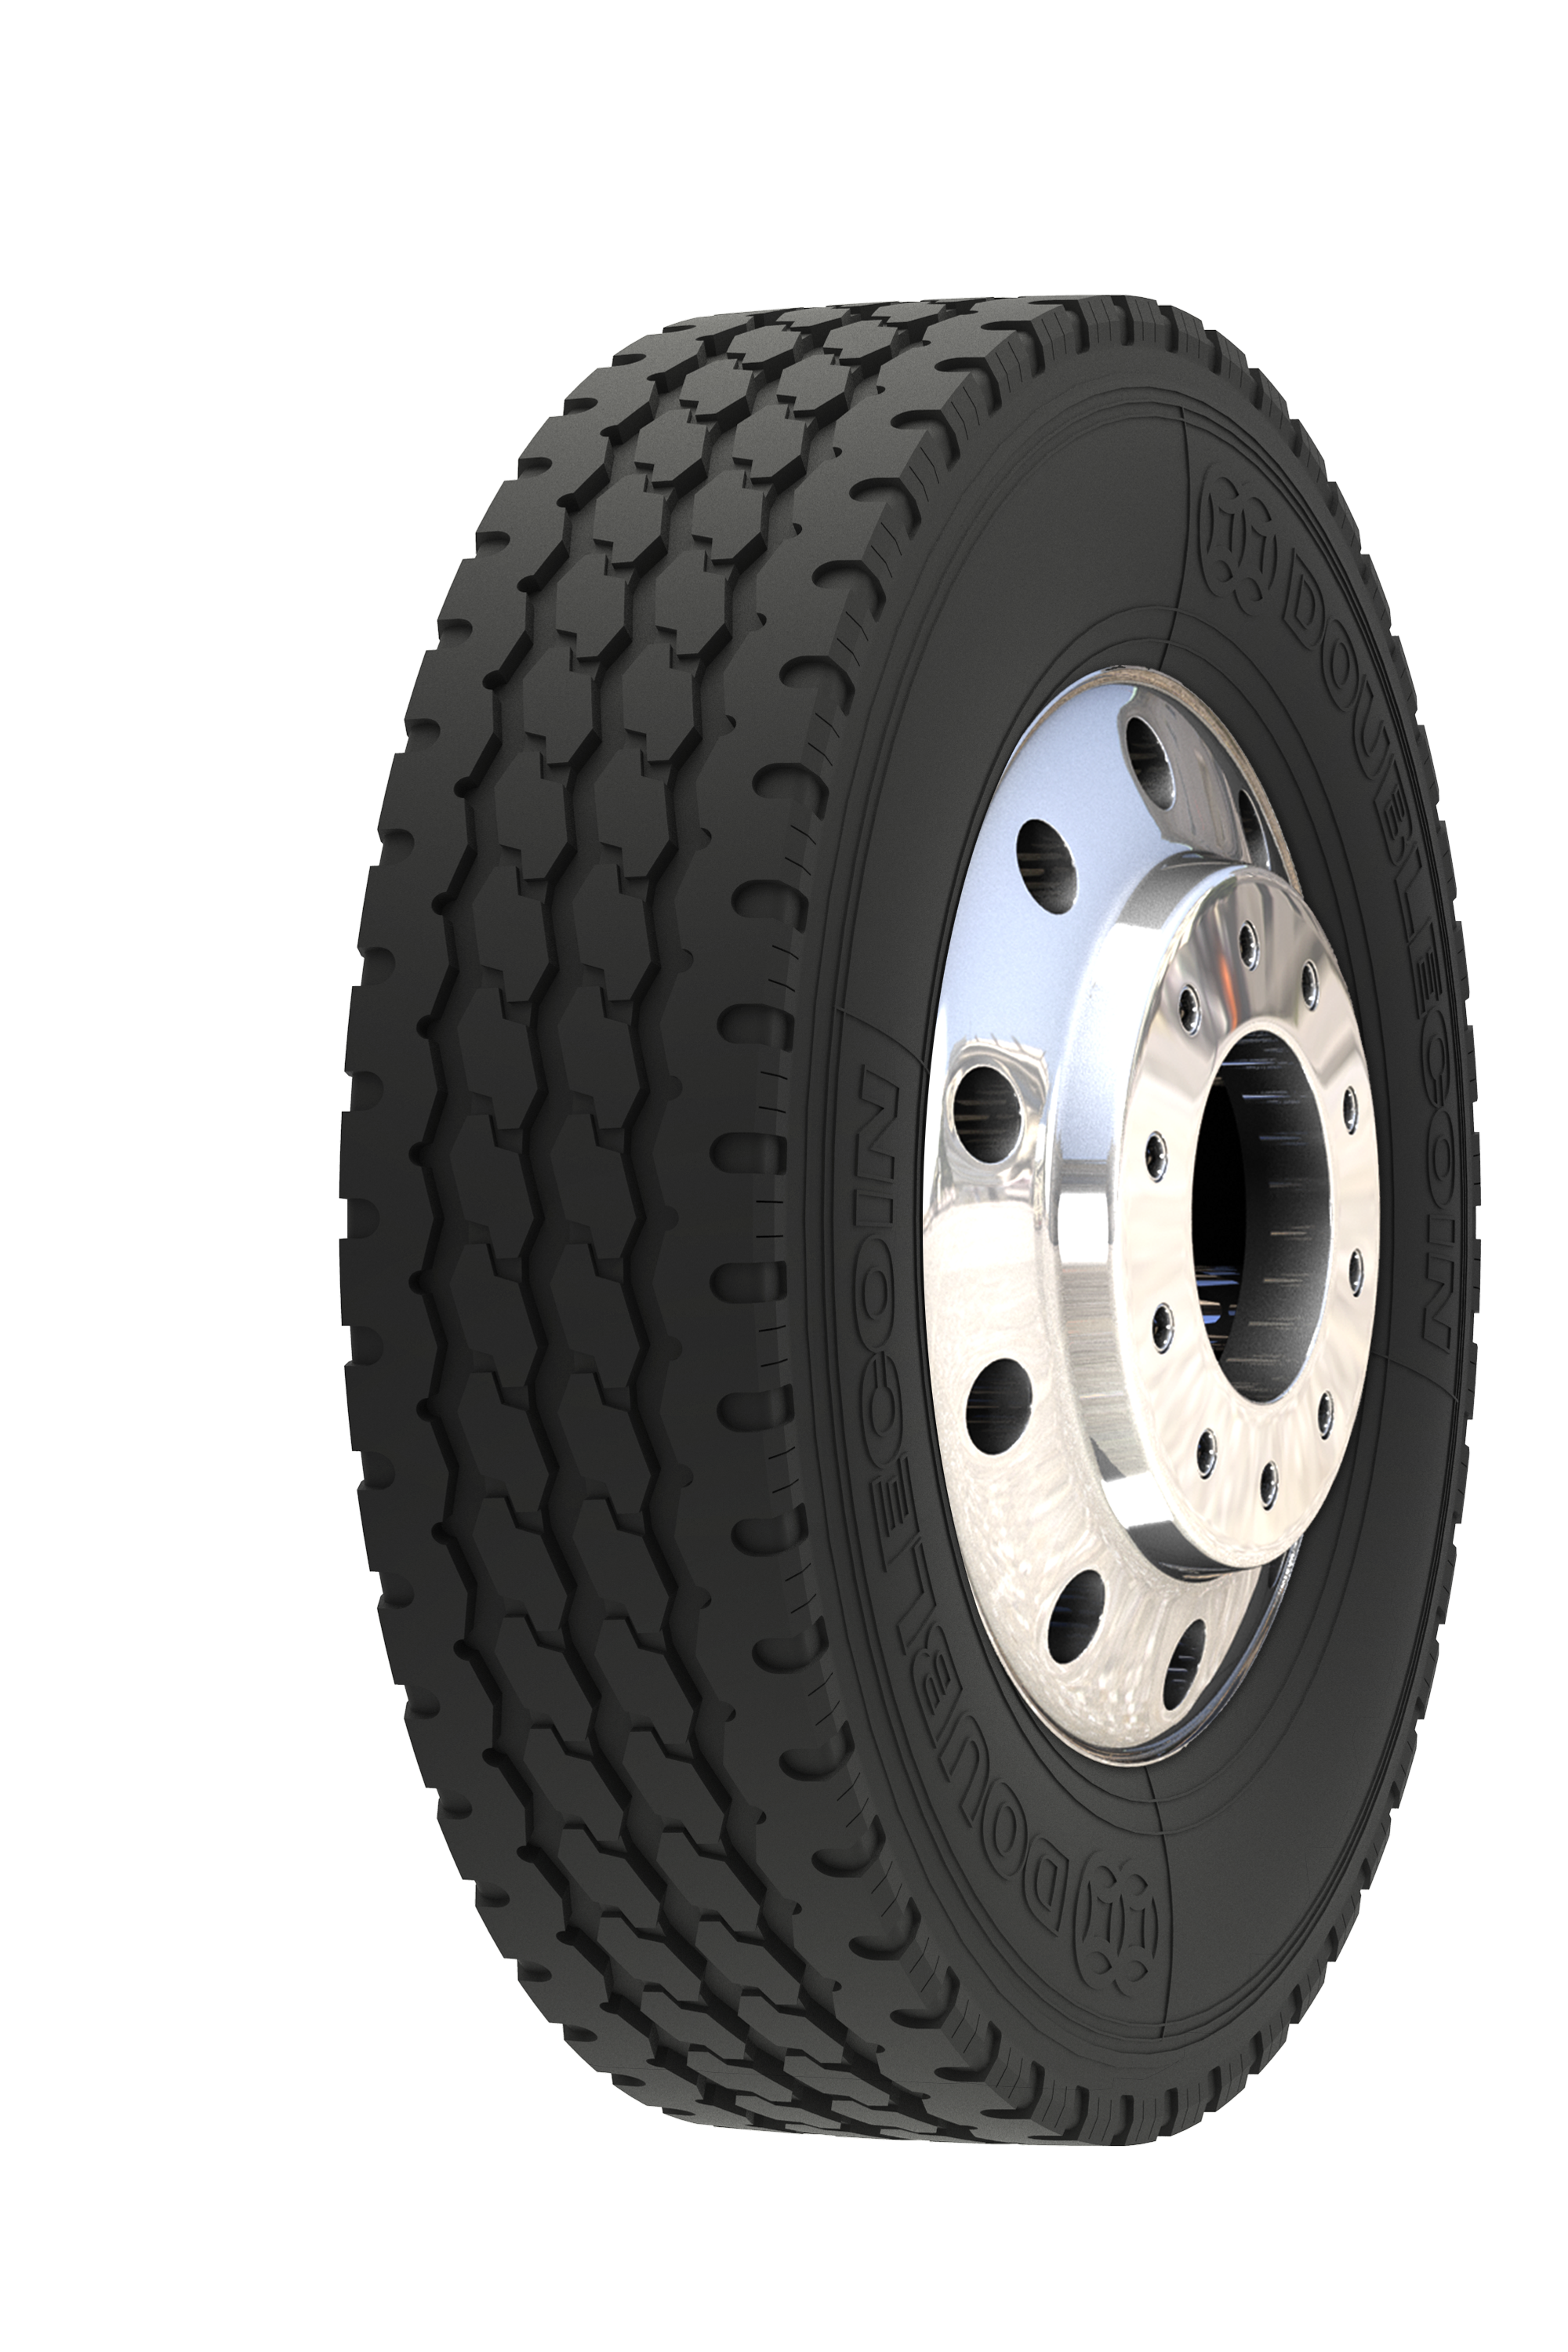 Double Coin RR706 Mixed-Service All-Position Truck Tire